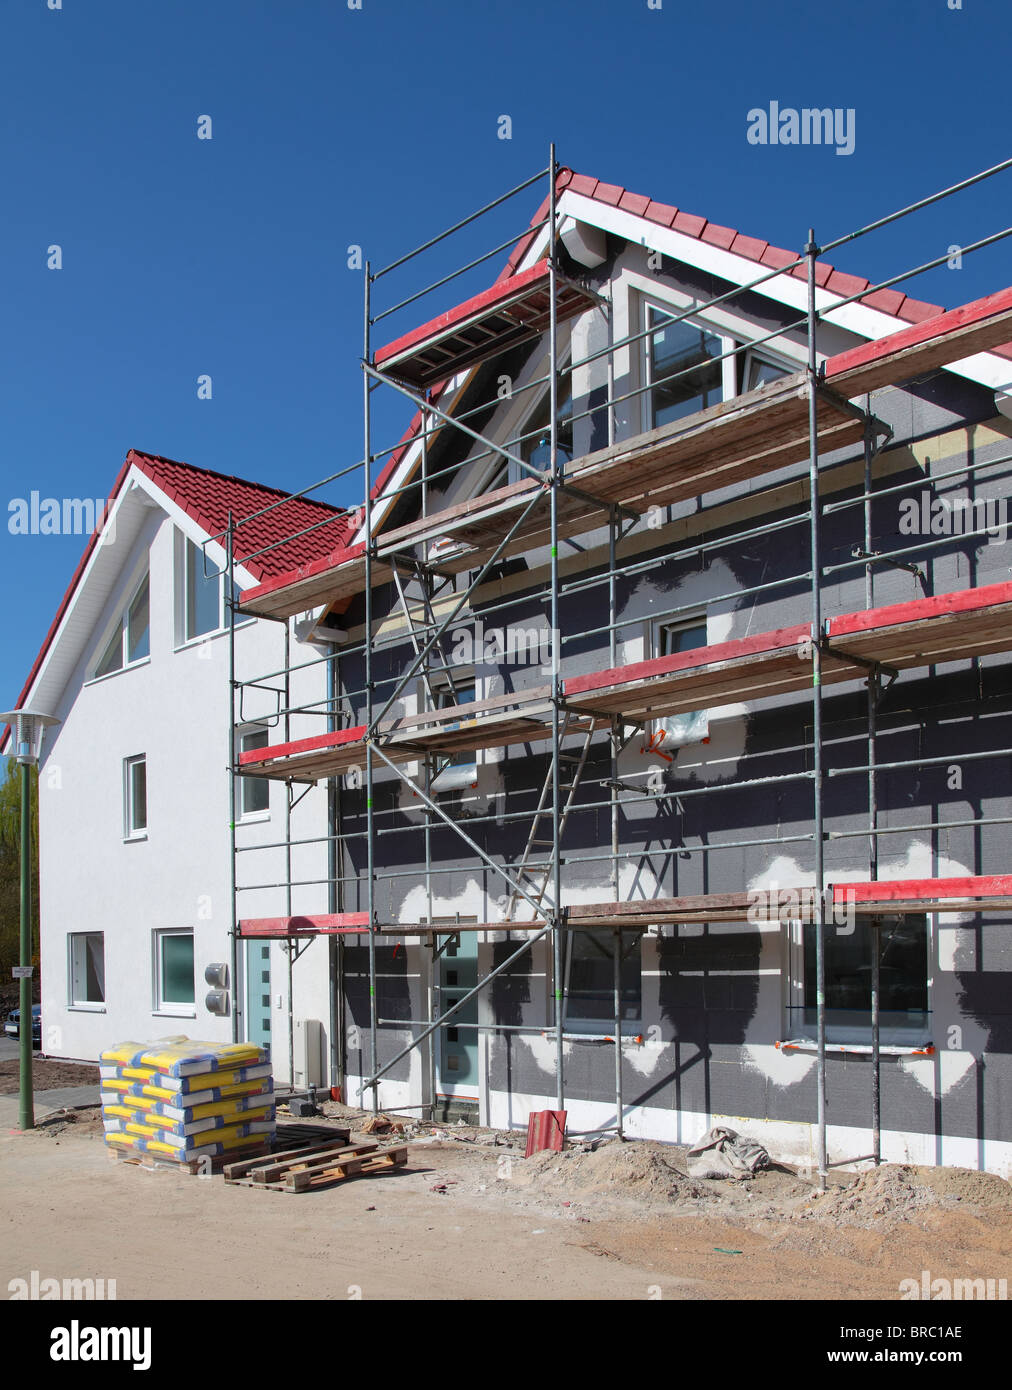 A new houses in shell construction on a shiny summery day. - Stock Image